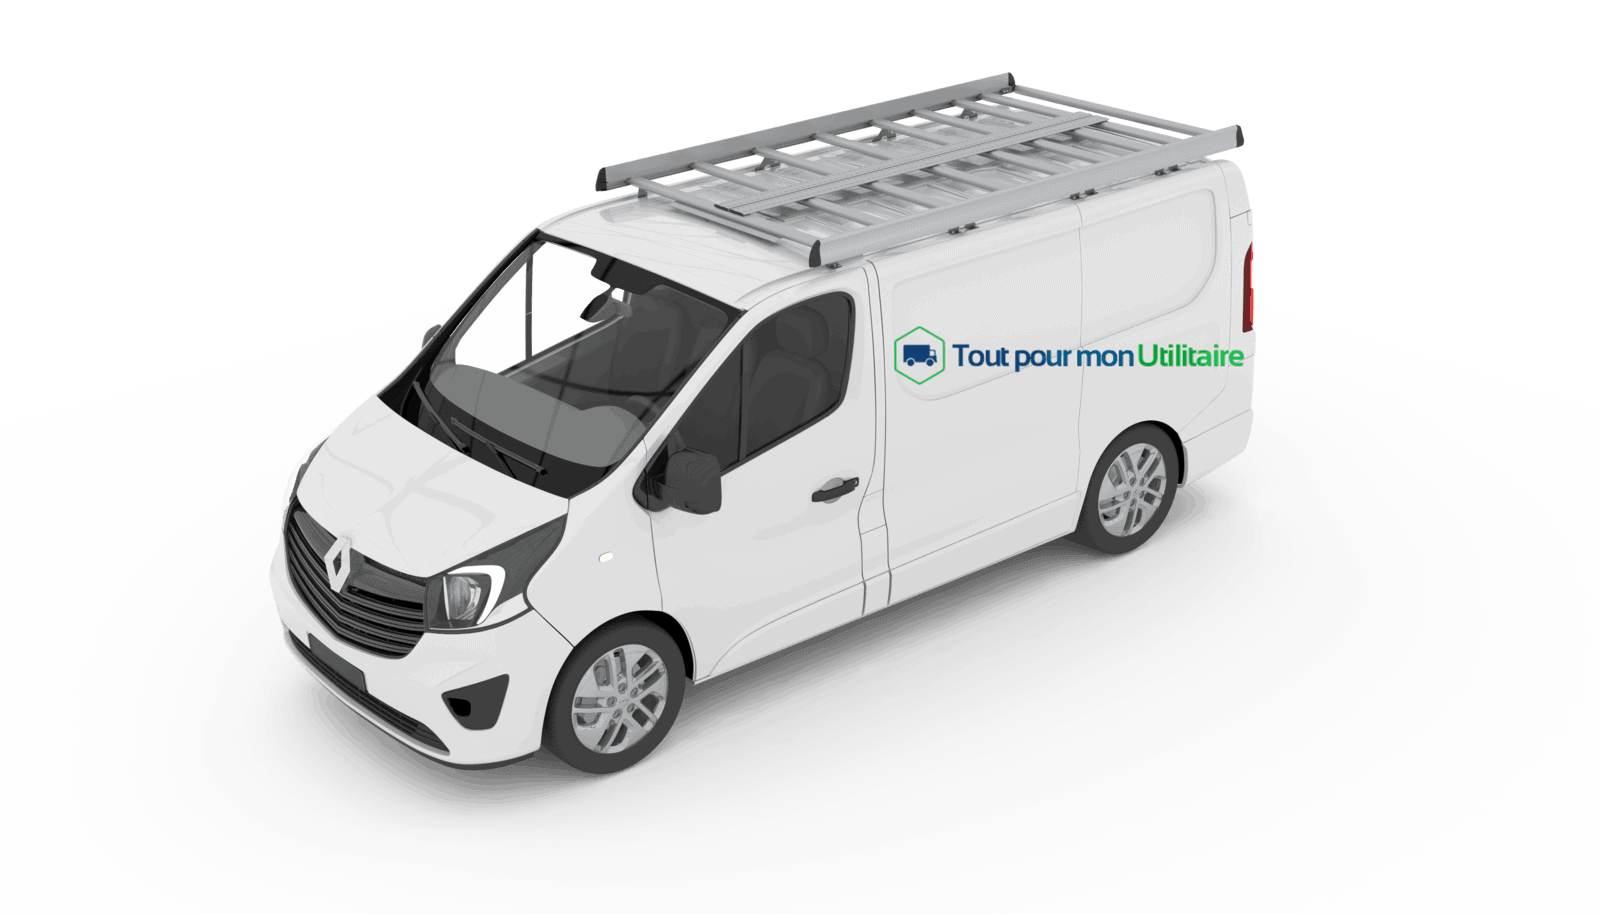 galerie aluminium renault trafic l2h1 pour v hicule utilitaire. Black Bedroom Furniture Sets. Home Design Ideas